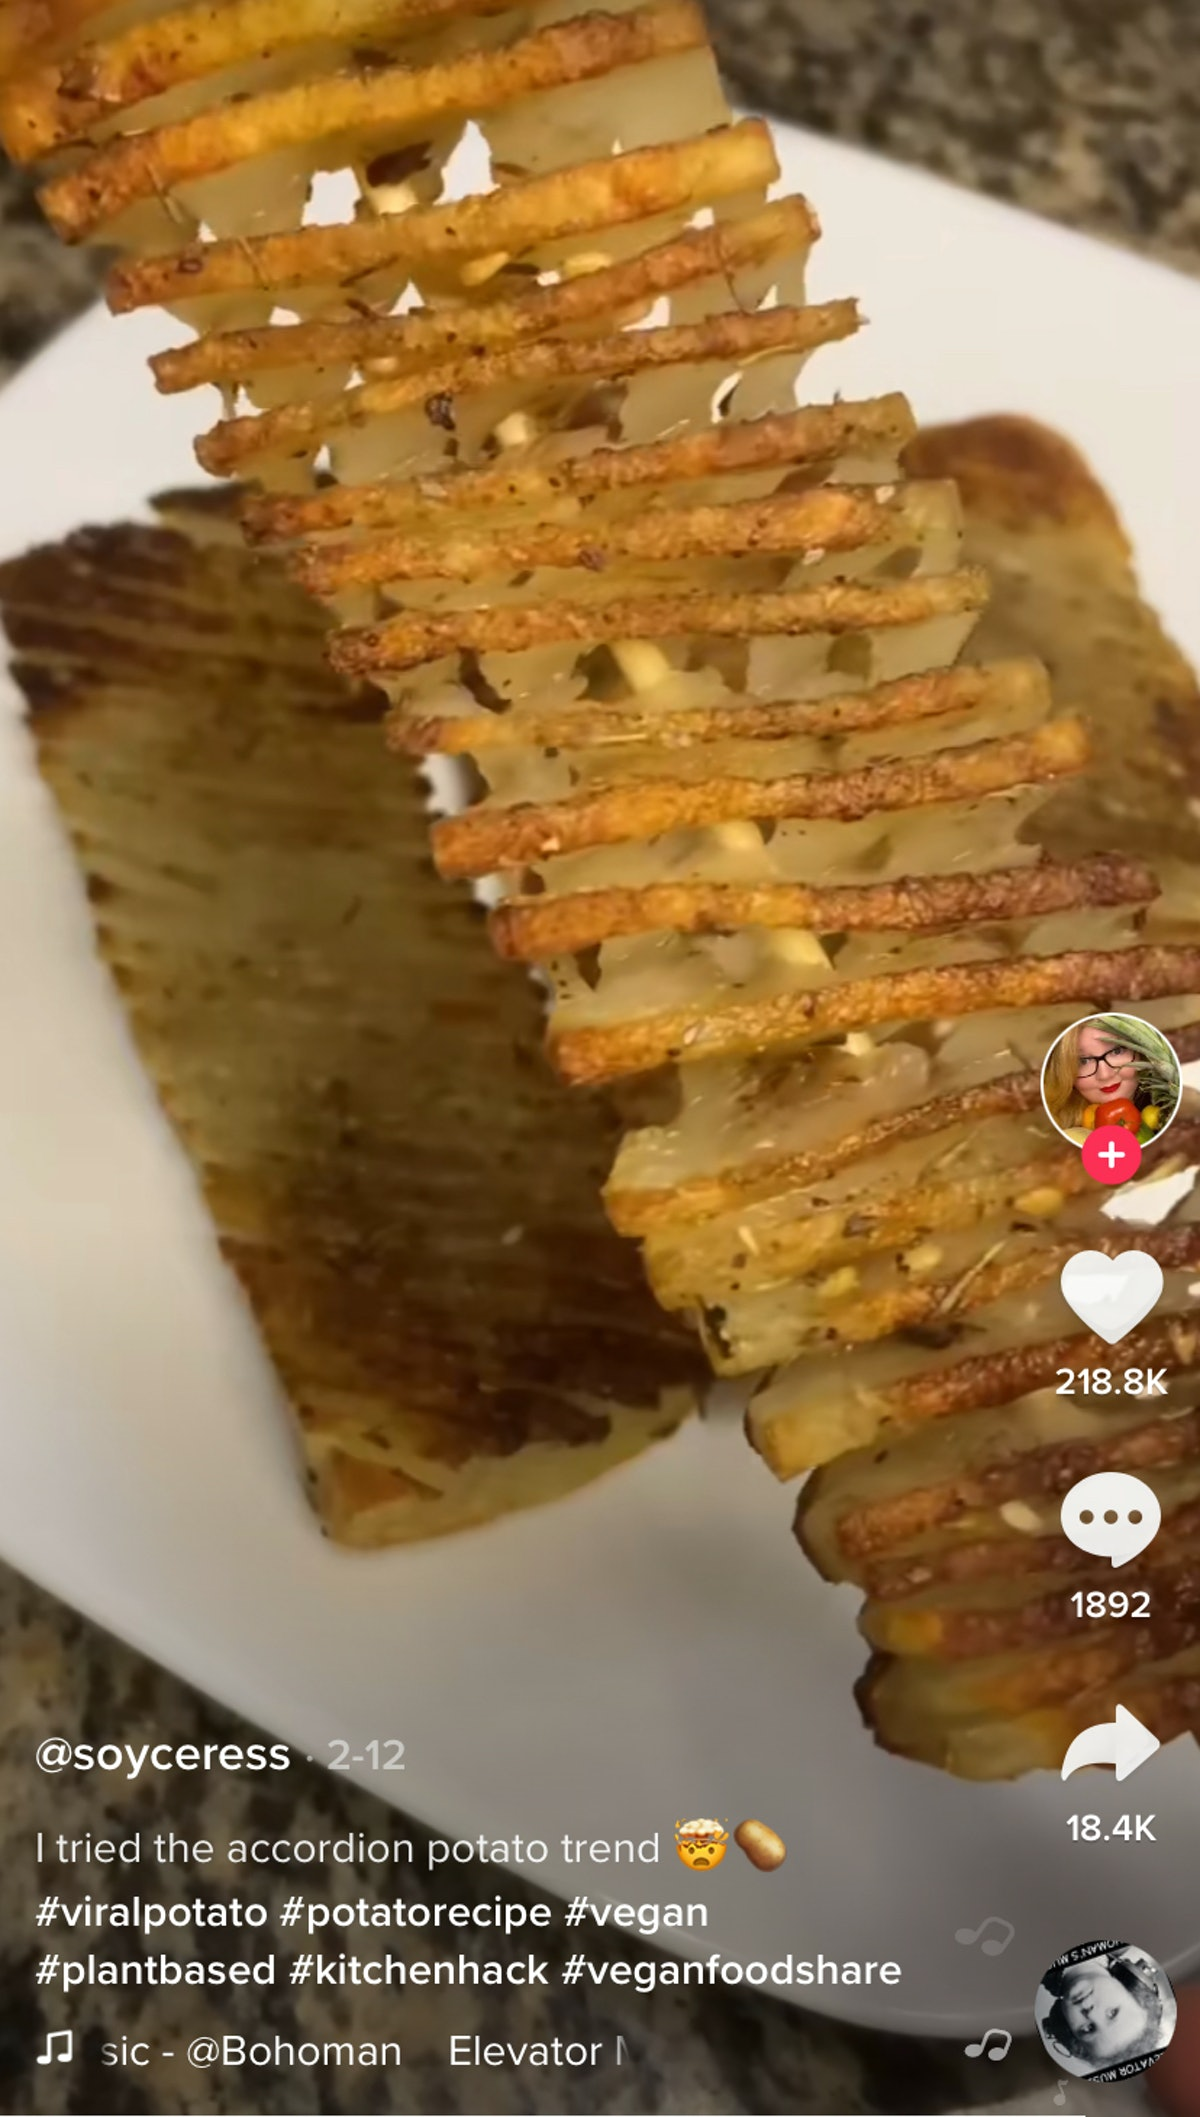 A woman makes accordion potatoes on skewers at home.